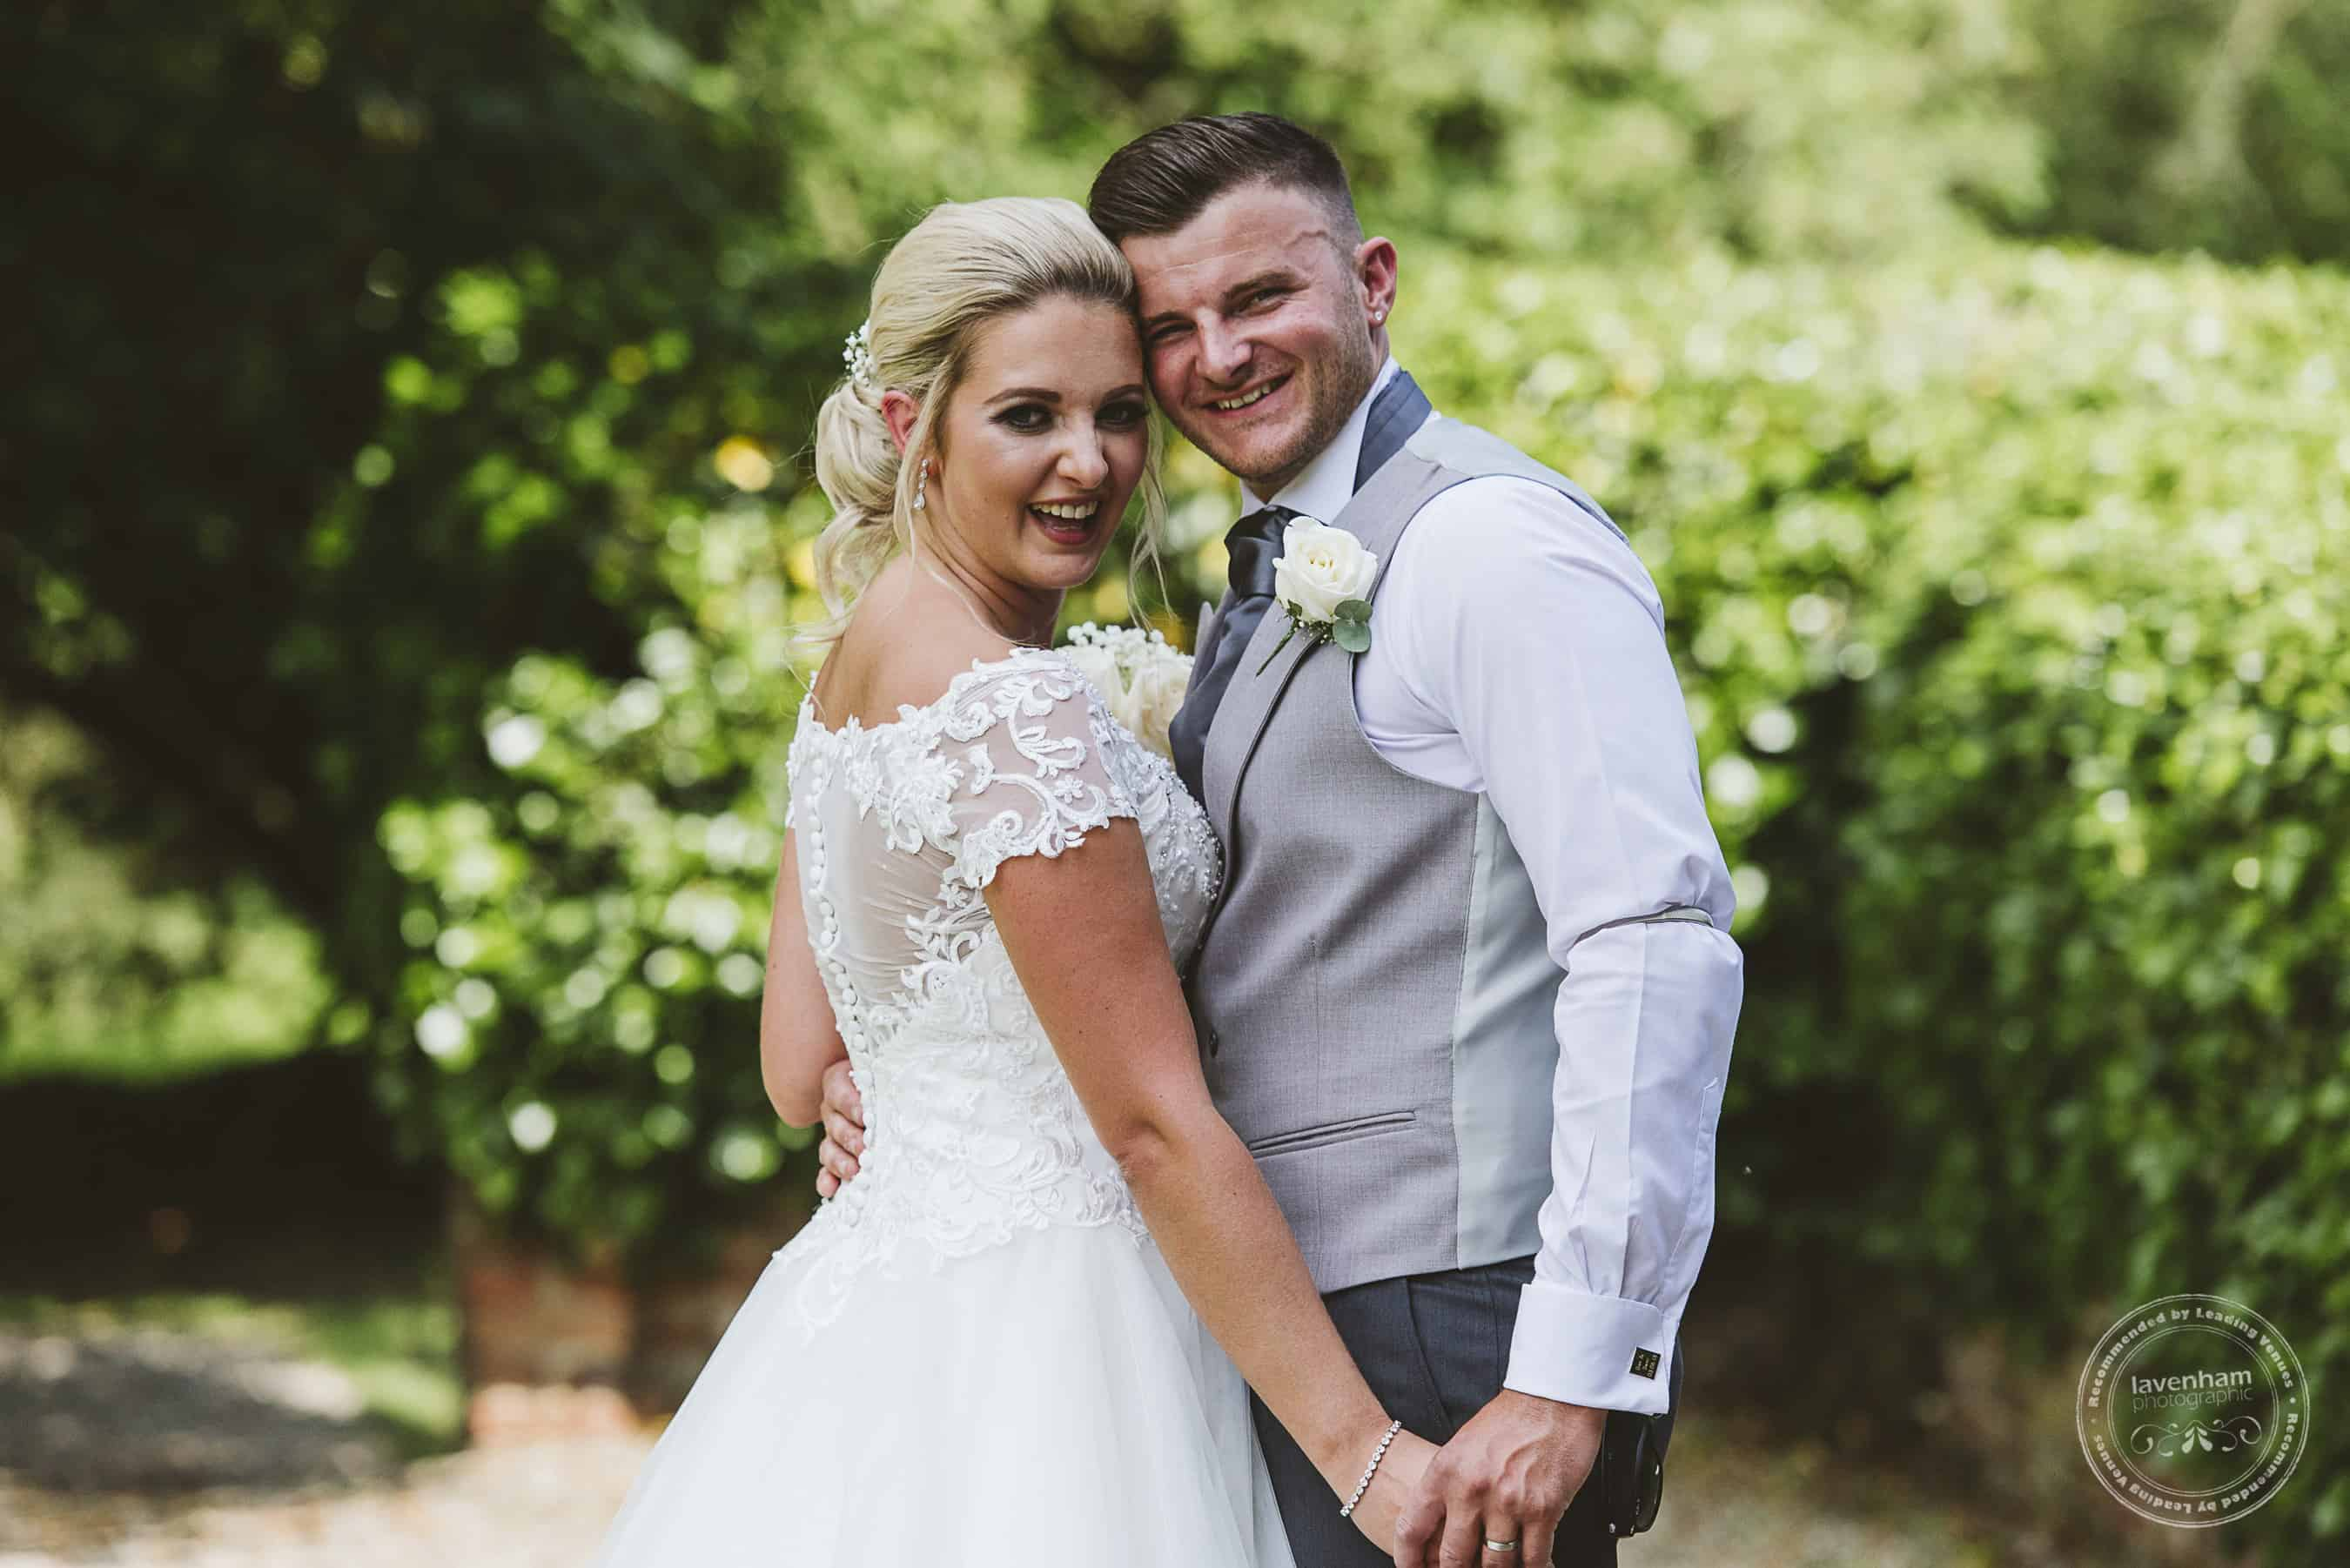 030618 Leez Priory Wedding Photography Lavenham Photographic 064